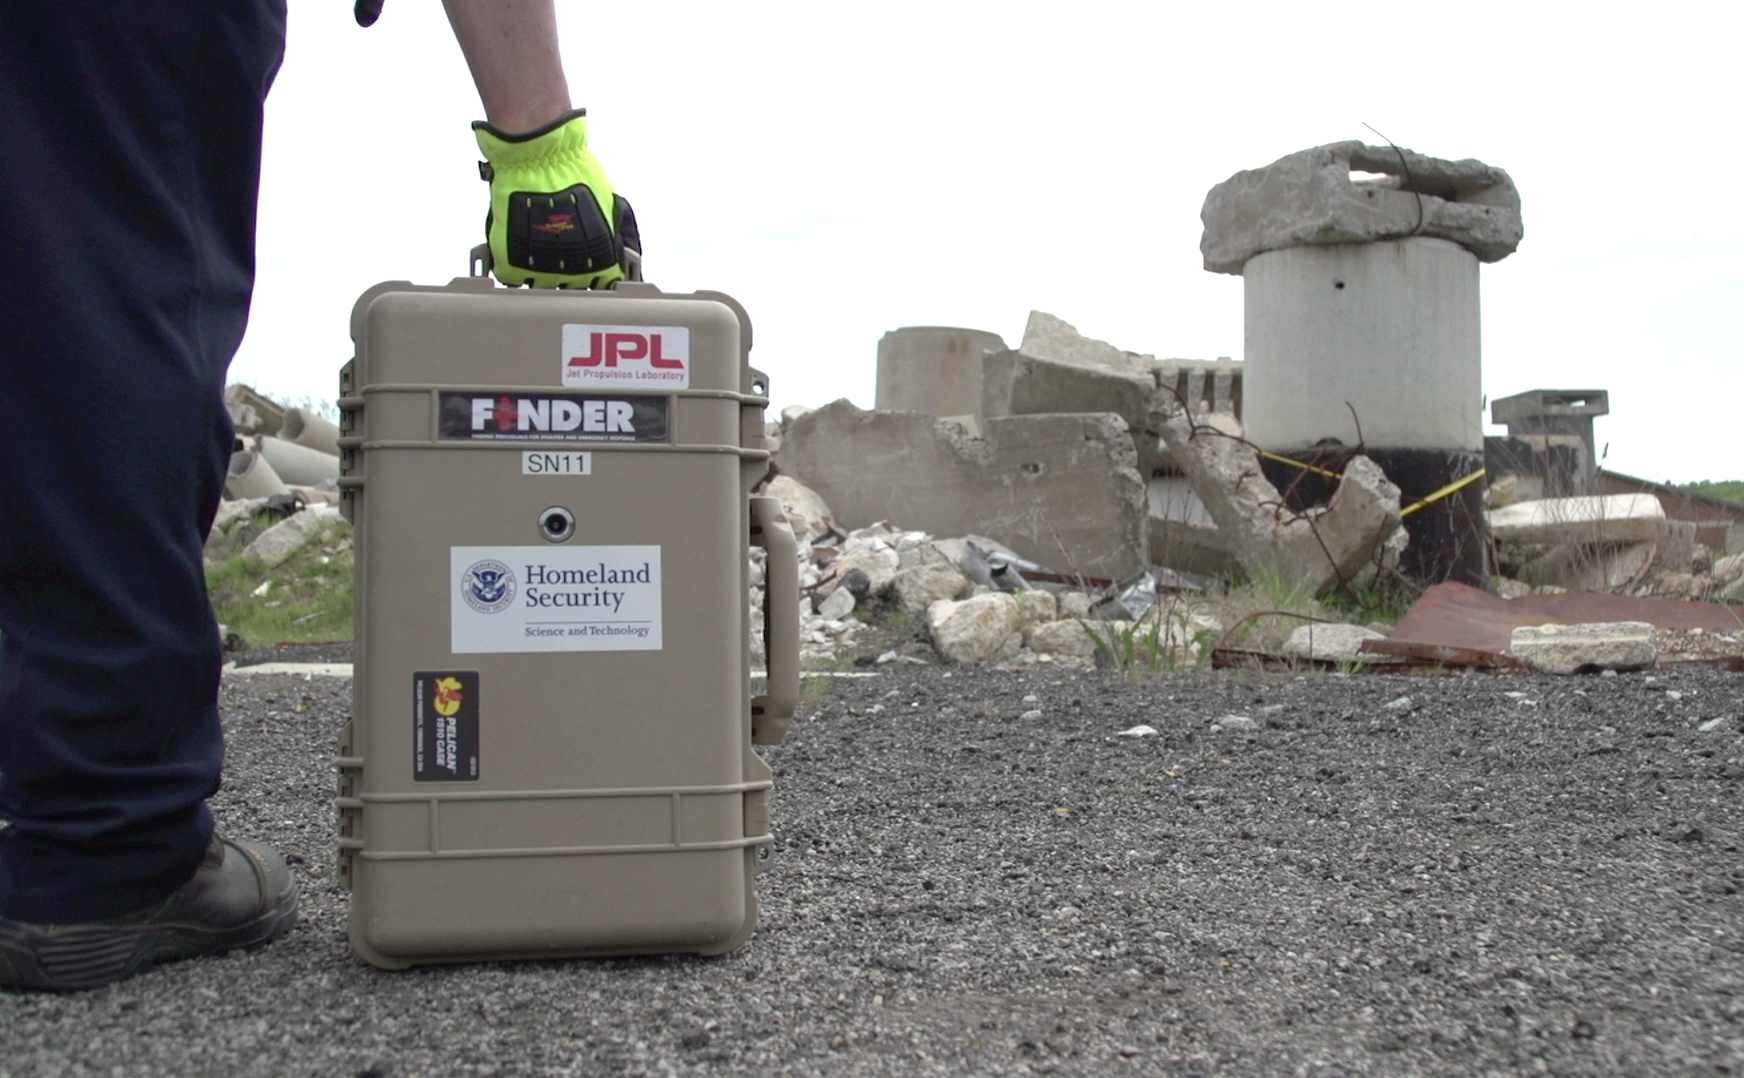 Finder Search And Rescue Technology Helped Save Lives In Nepal Nasa